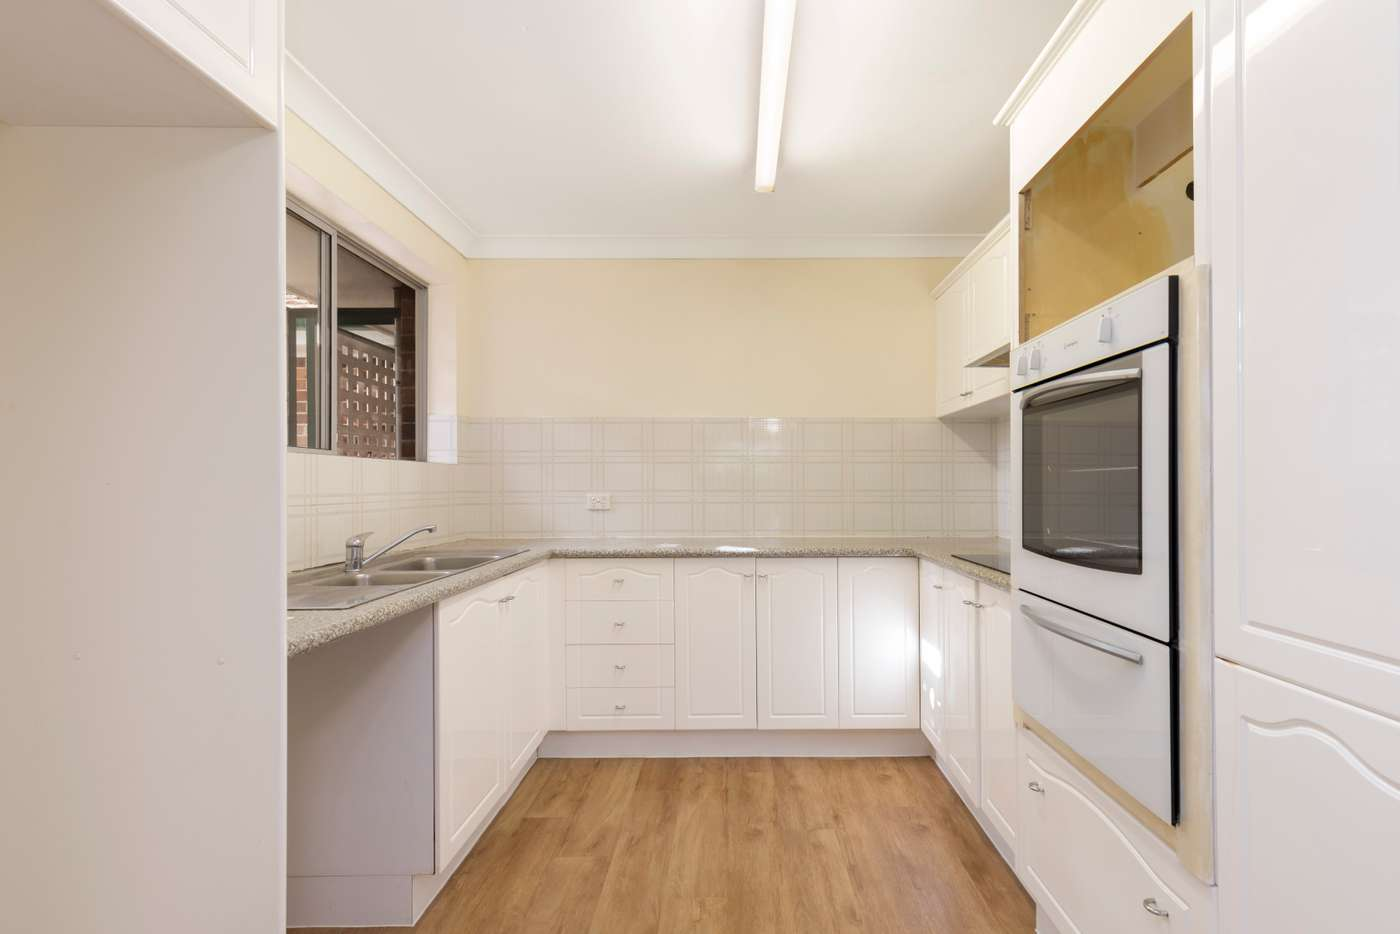 Main view of Homely unit listing, 7/93 Macquarie Street, St Lucia QLD 4067